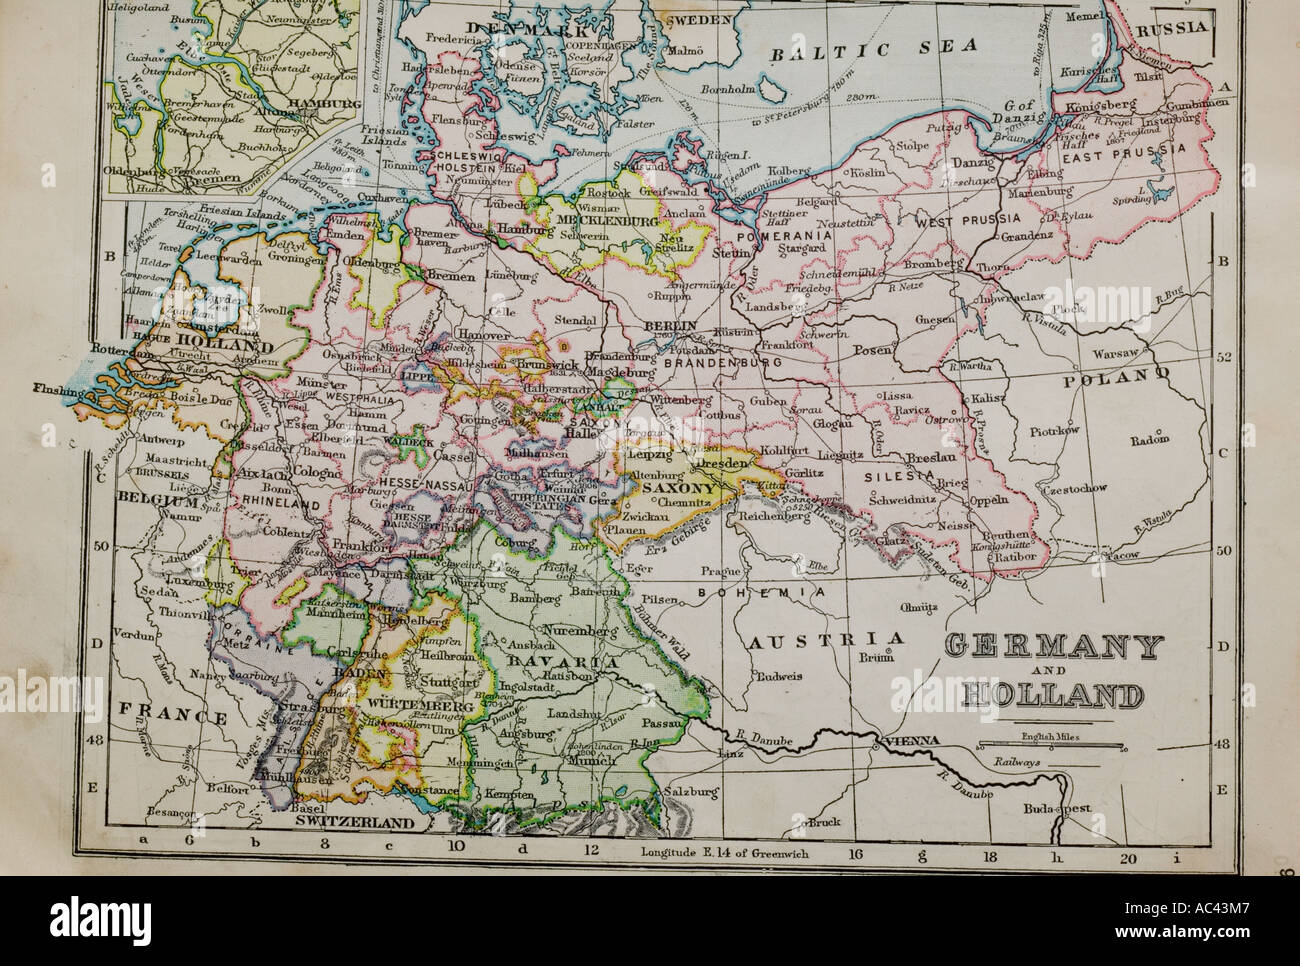 An Old Year Old Map Of Germany And Holland Stock Photo - Germany map by year